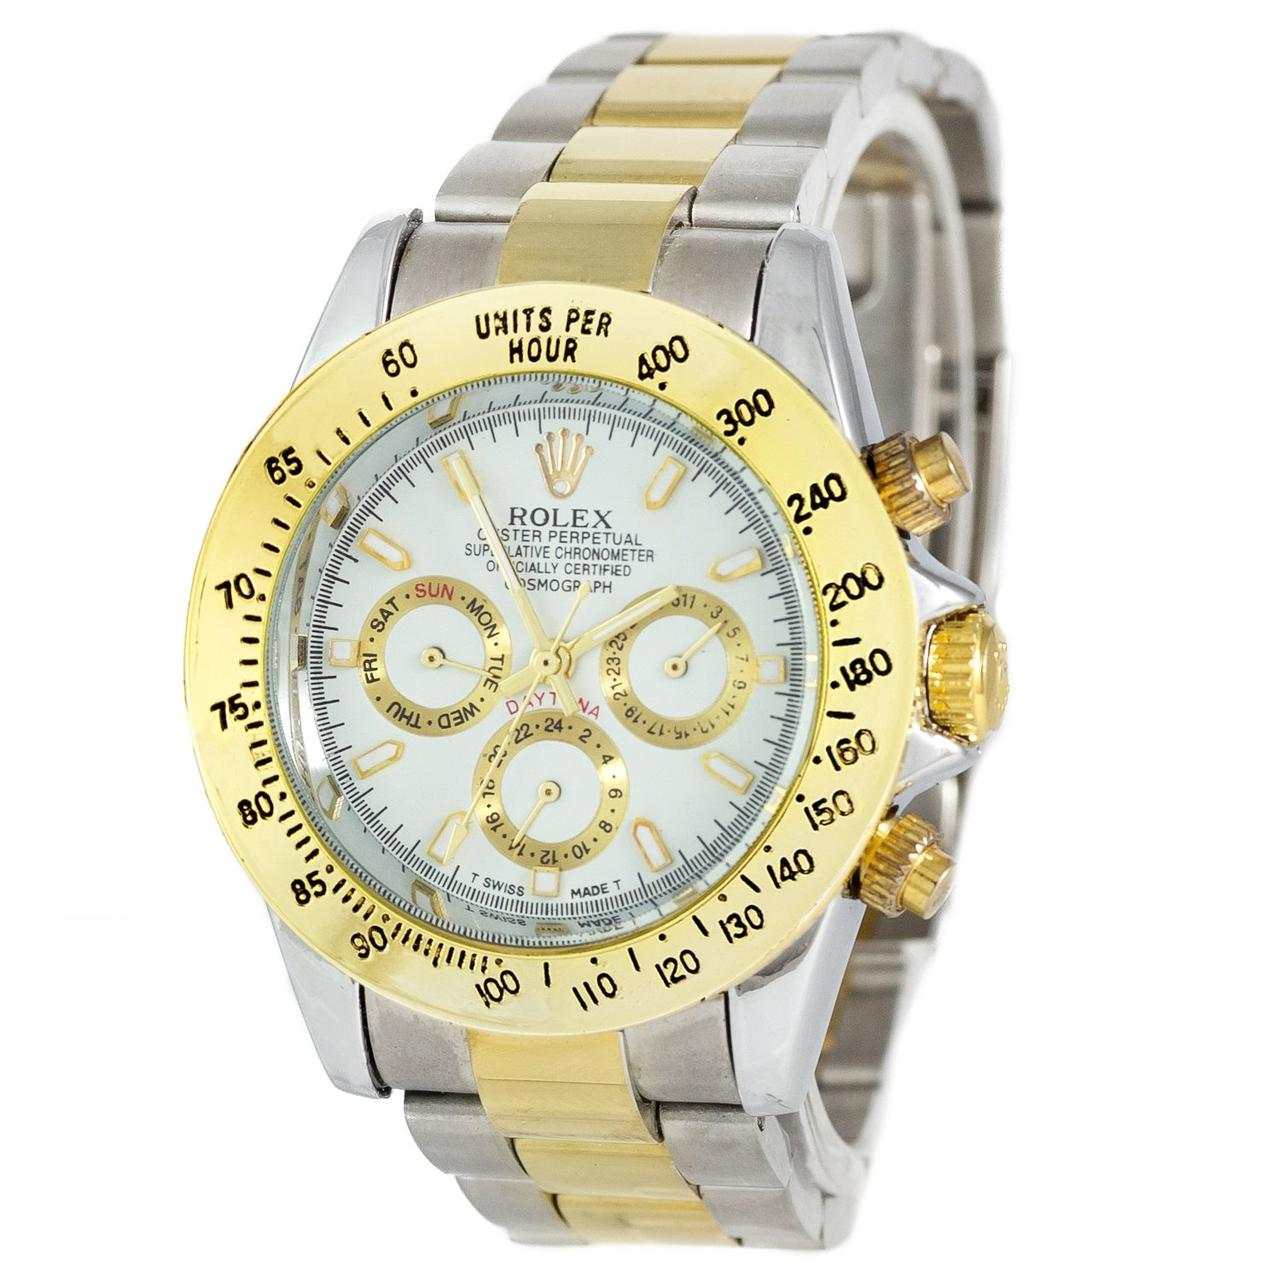 Rolex Daytona AA Men Silver-Gold-White